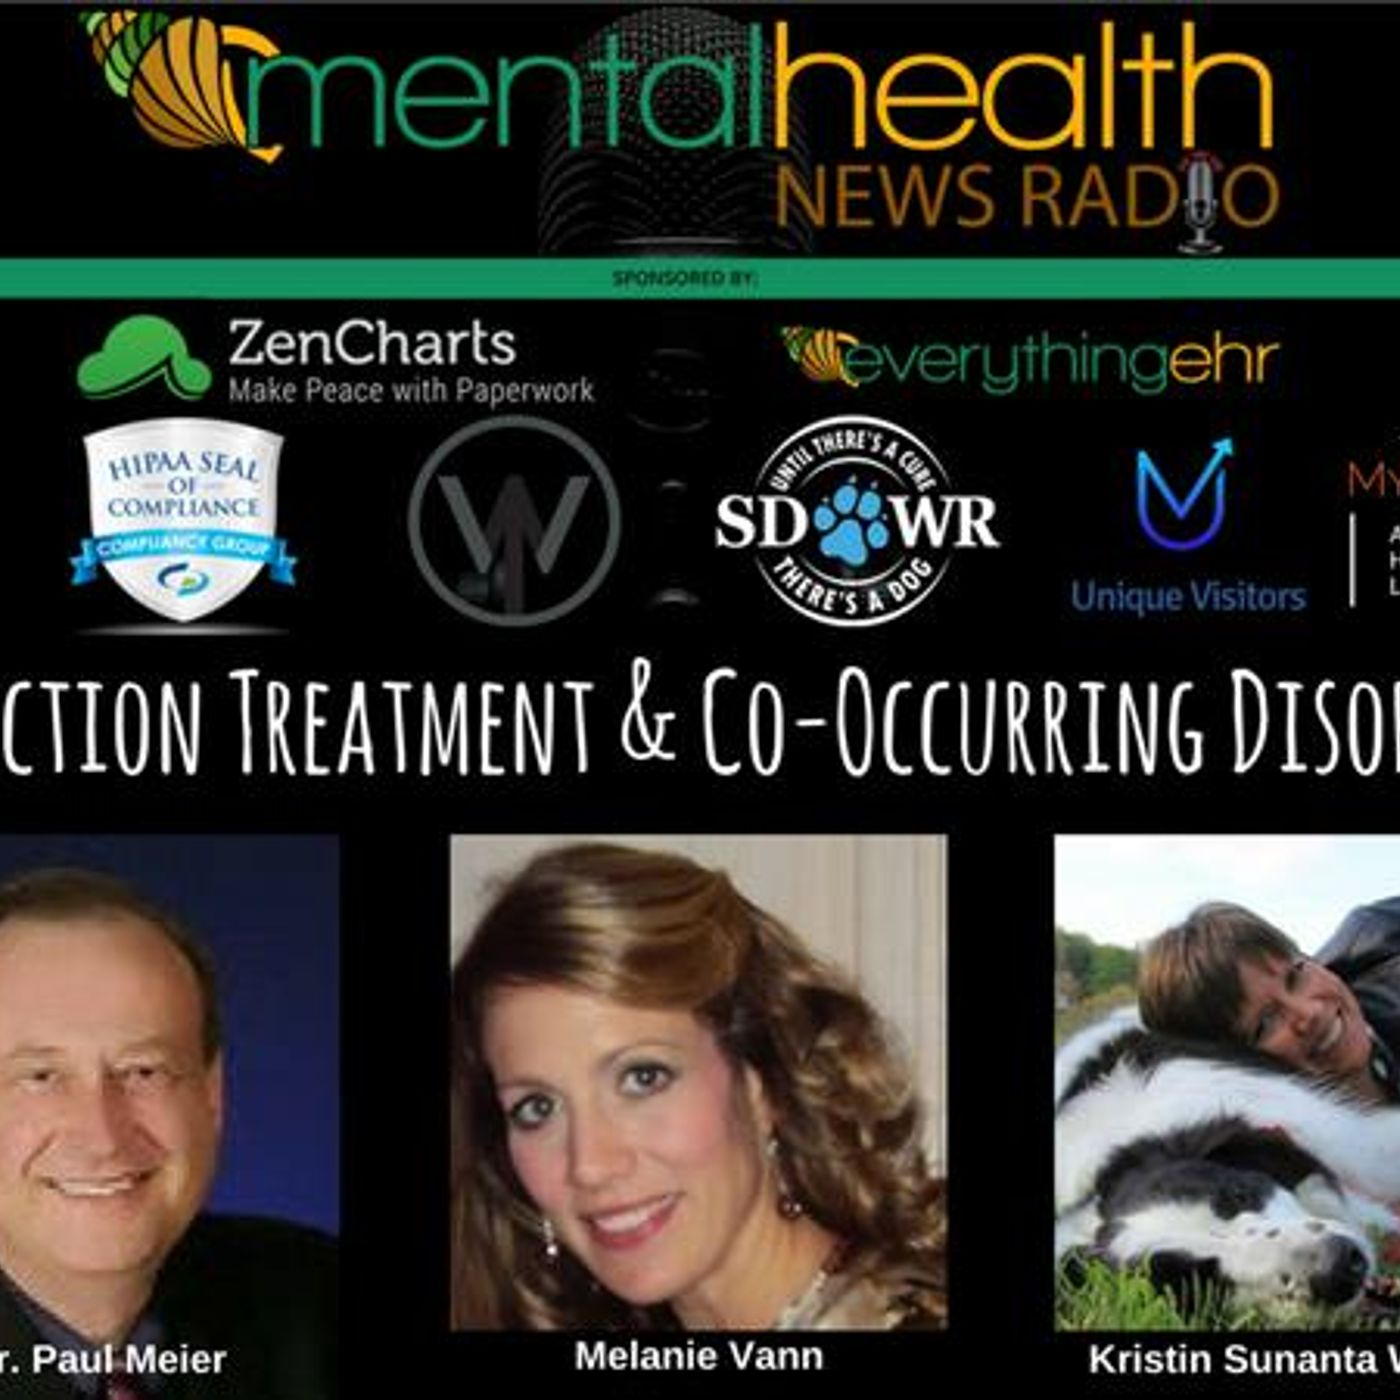 Mental Health News Radio - Round Table Discussion with Dr. Paul Meier: Generational Trauma & Family Systems